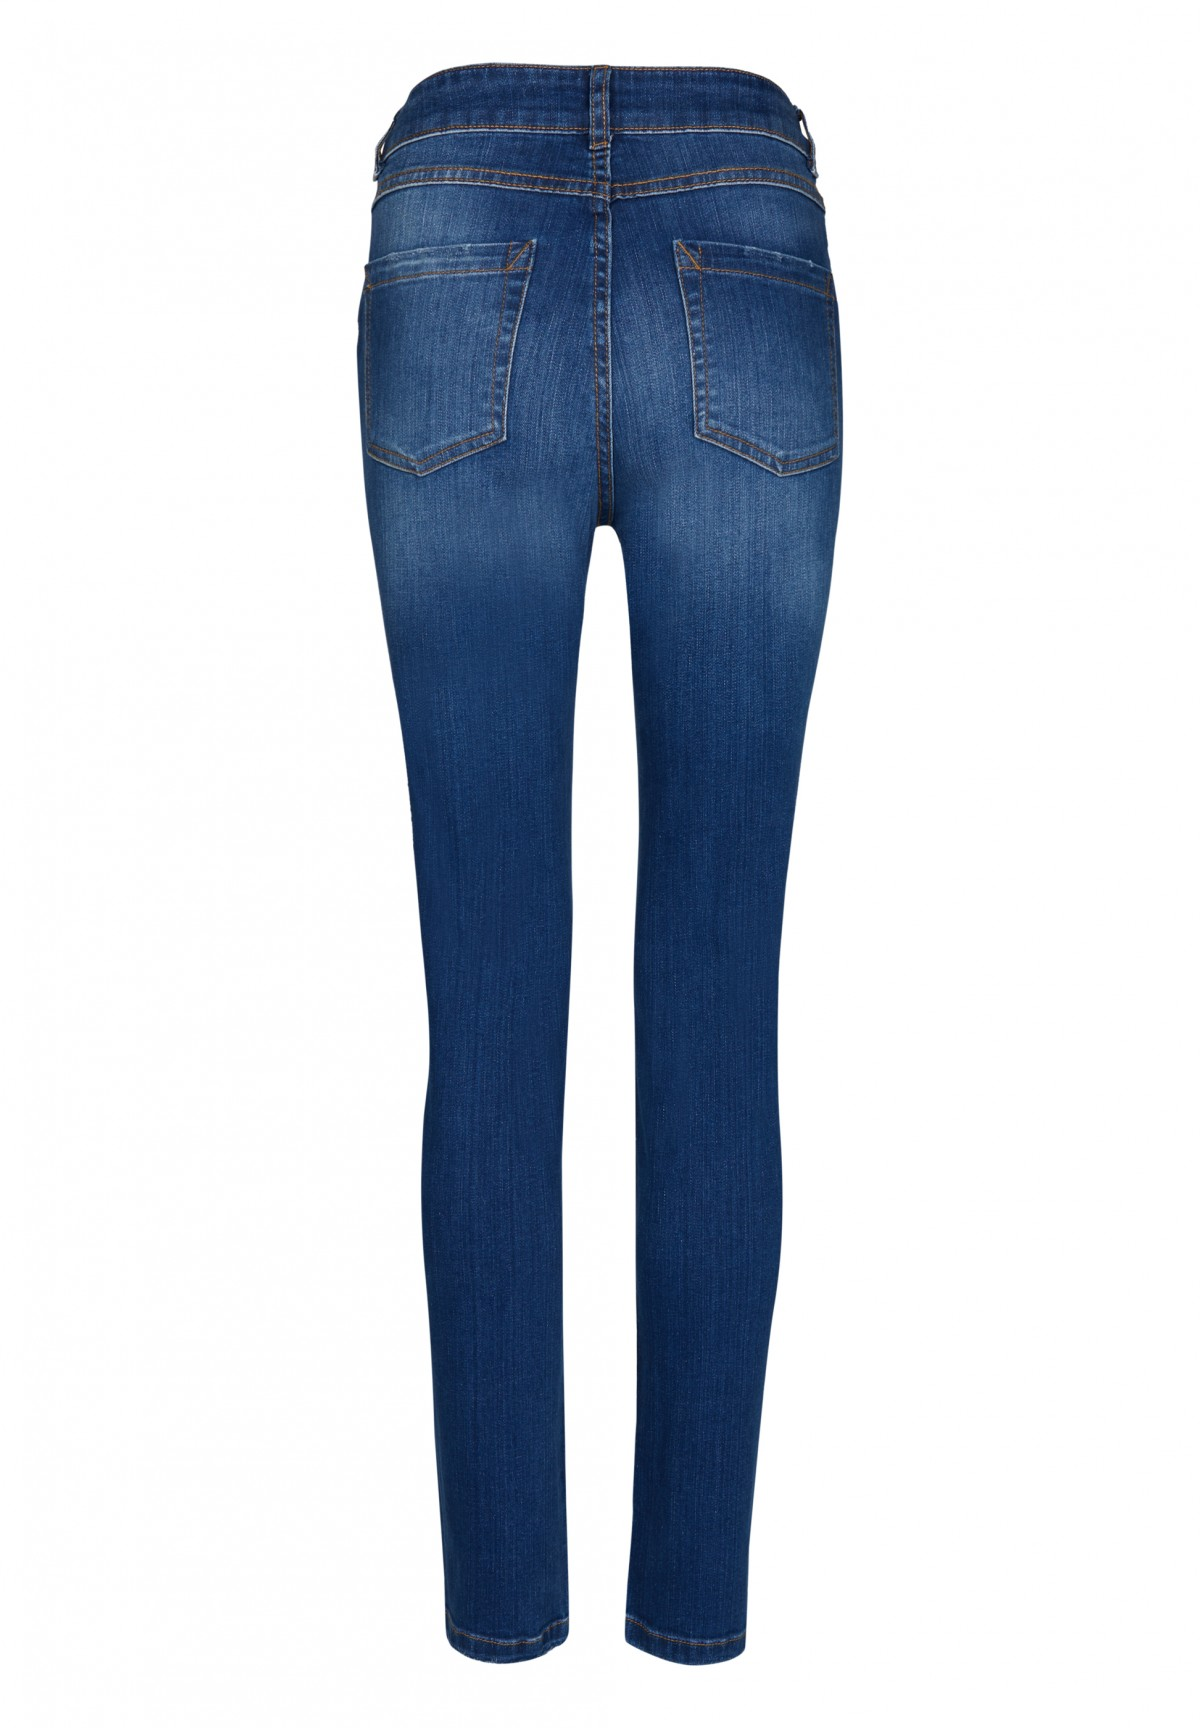 Bequeme Jeans im 5 Pocket-Style / Jeans